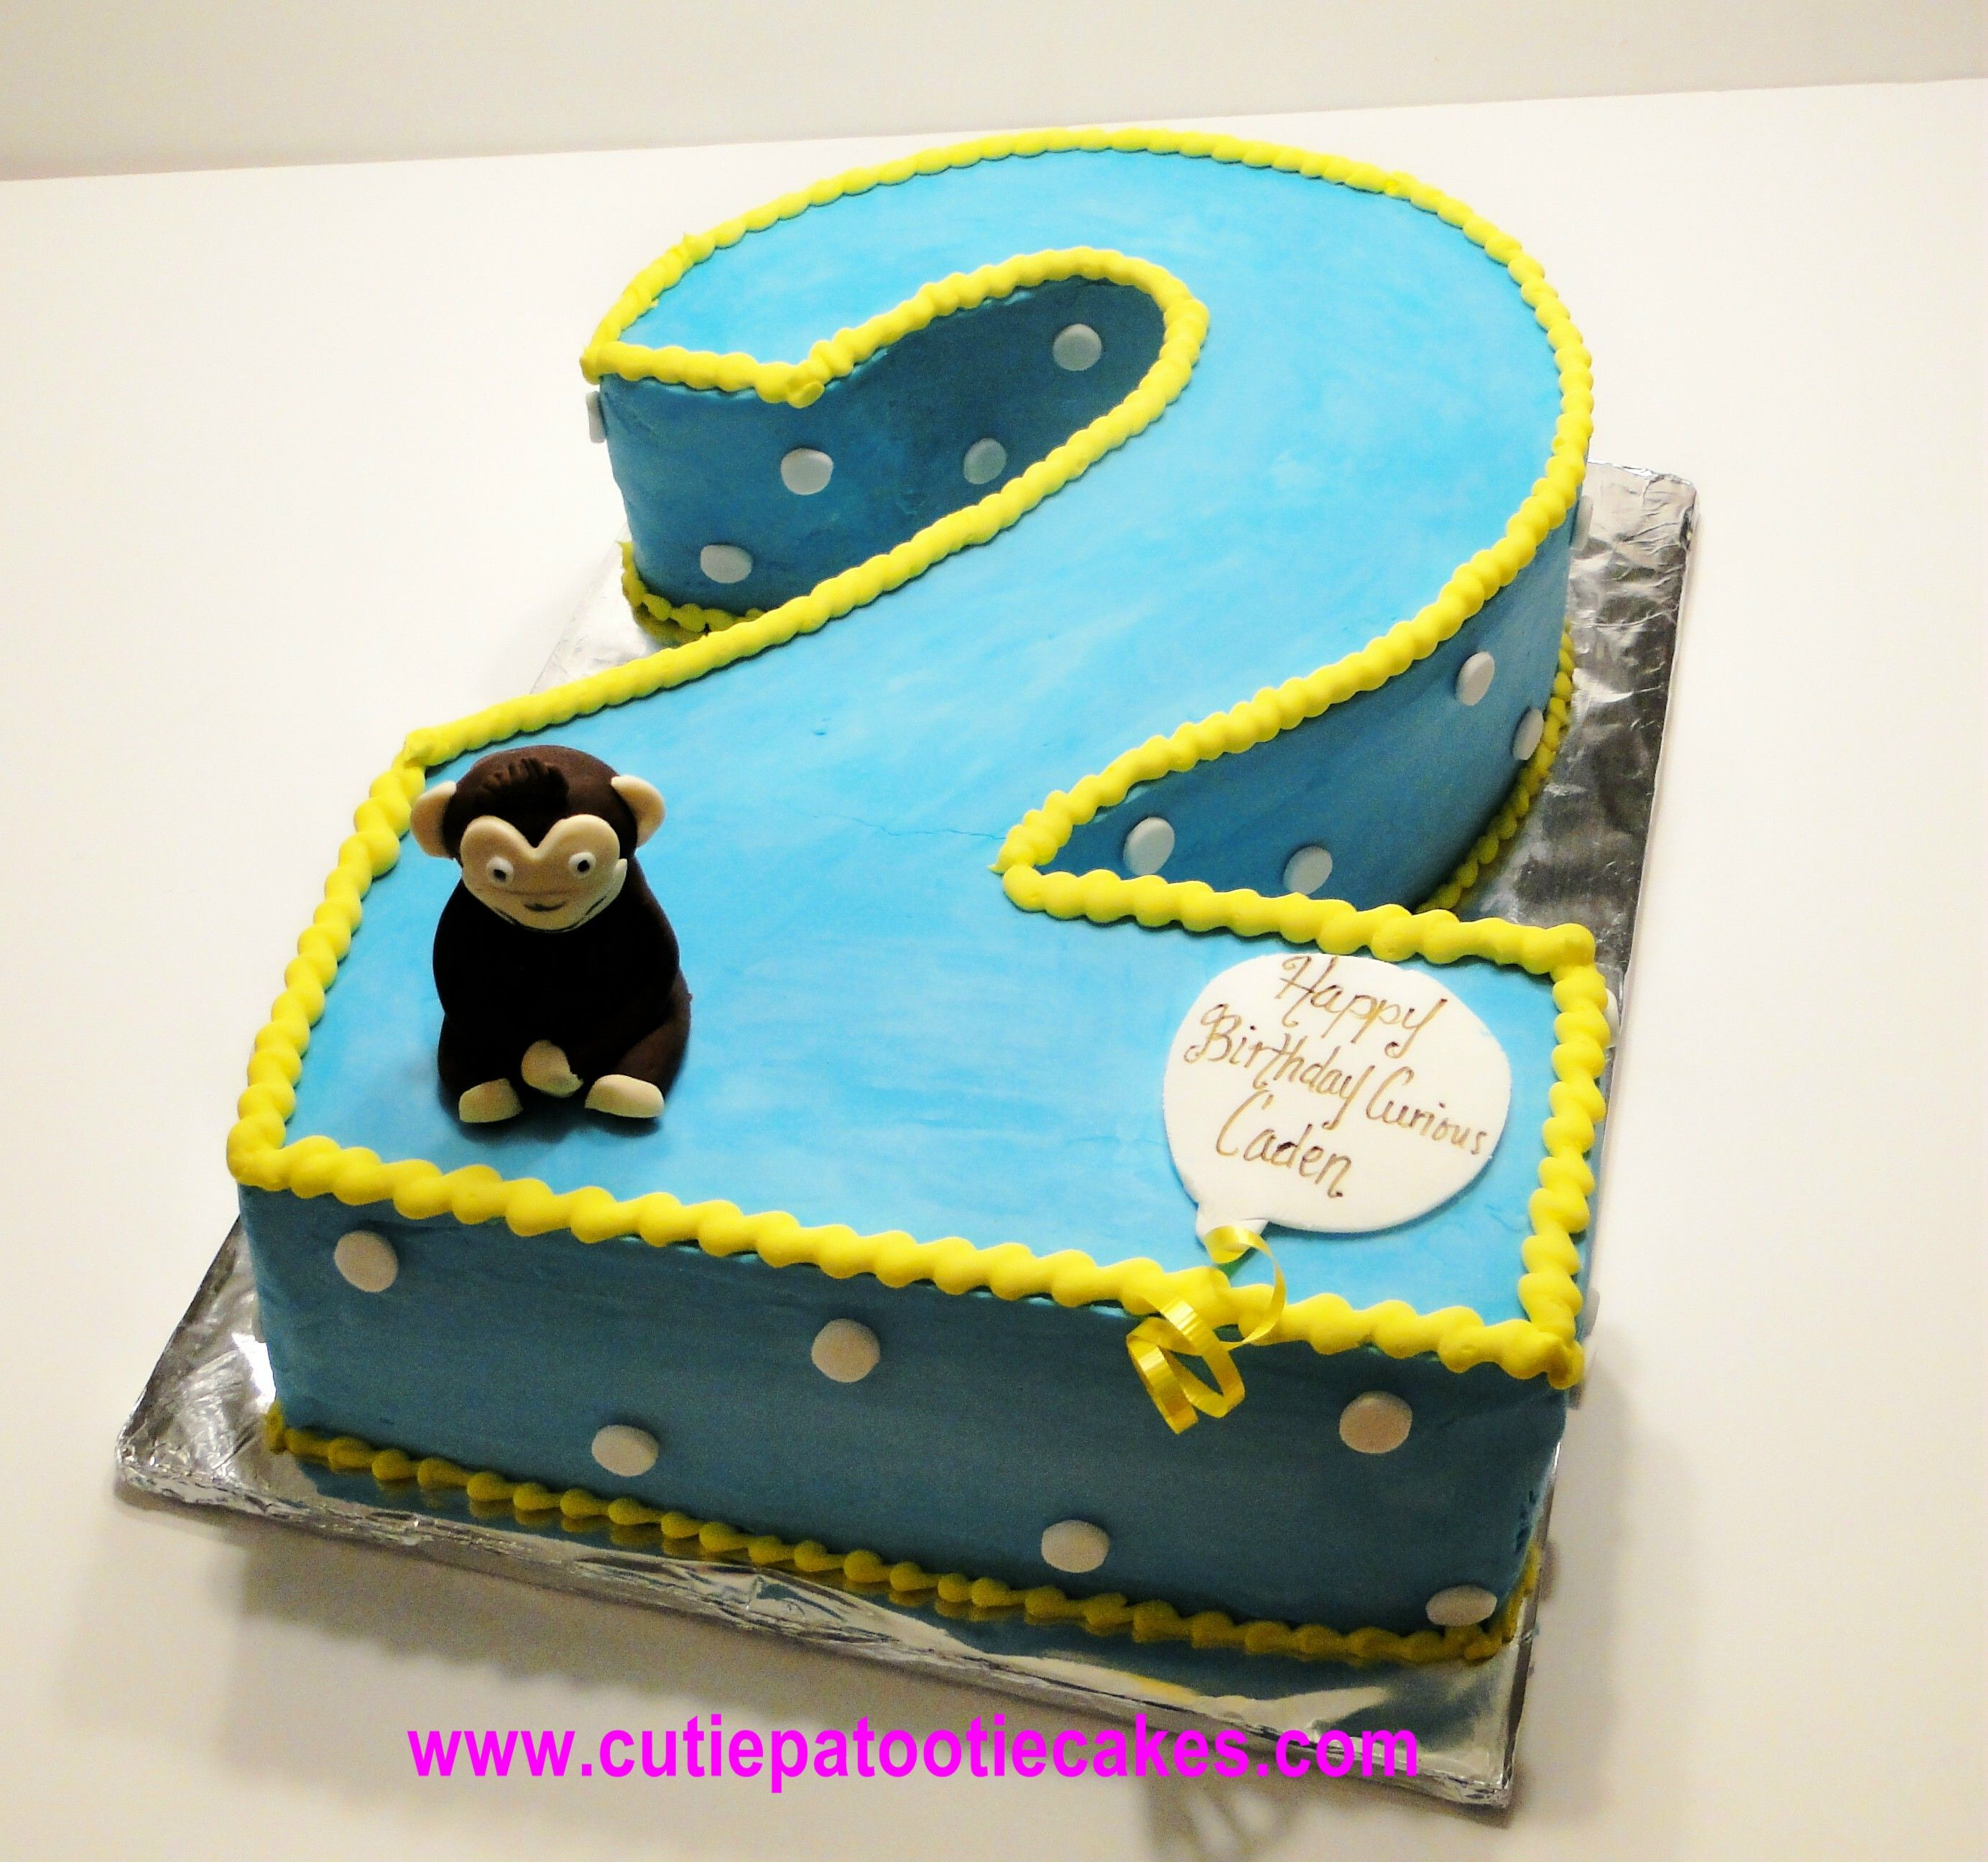 Happy 2nd Birthday Curious George Cake